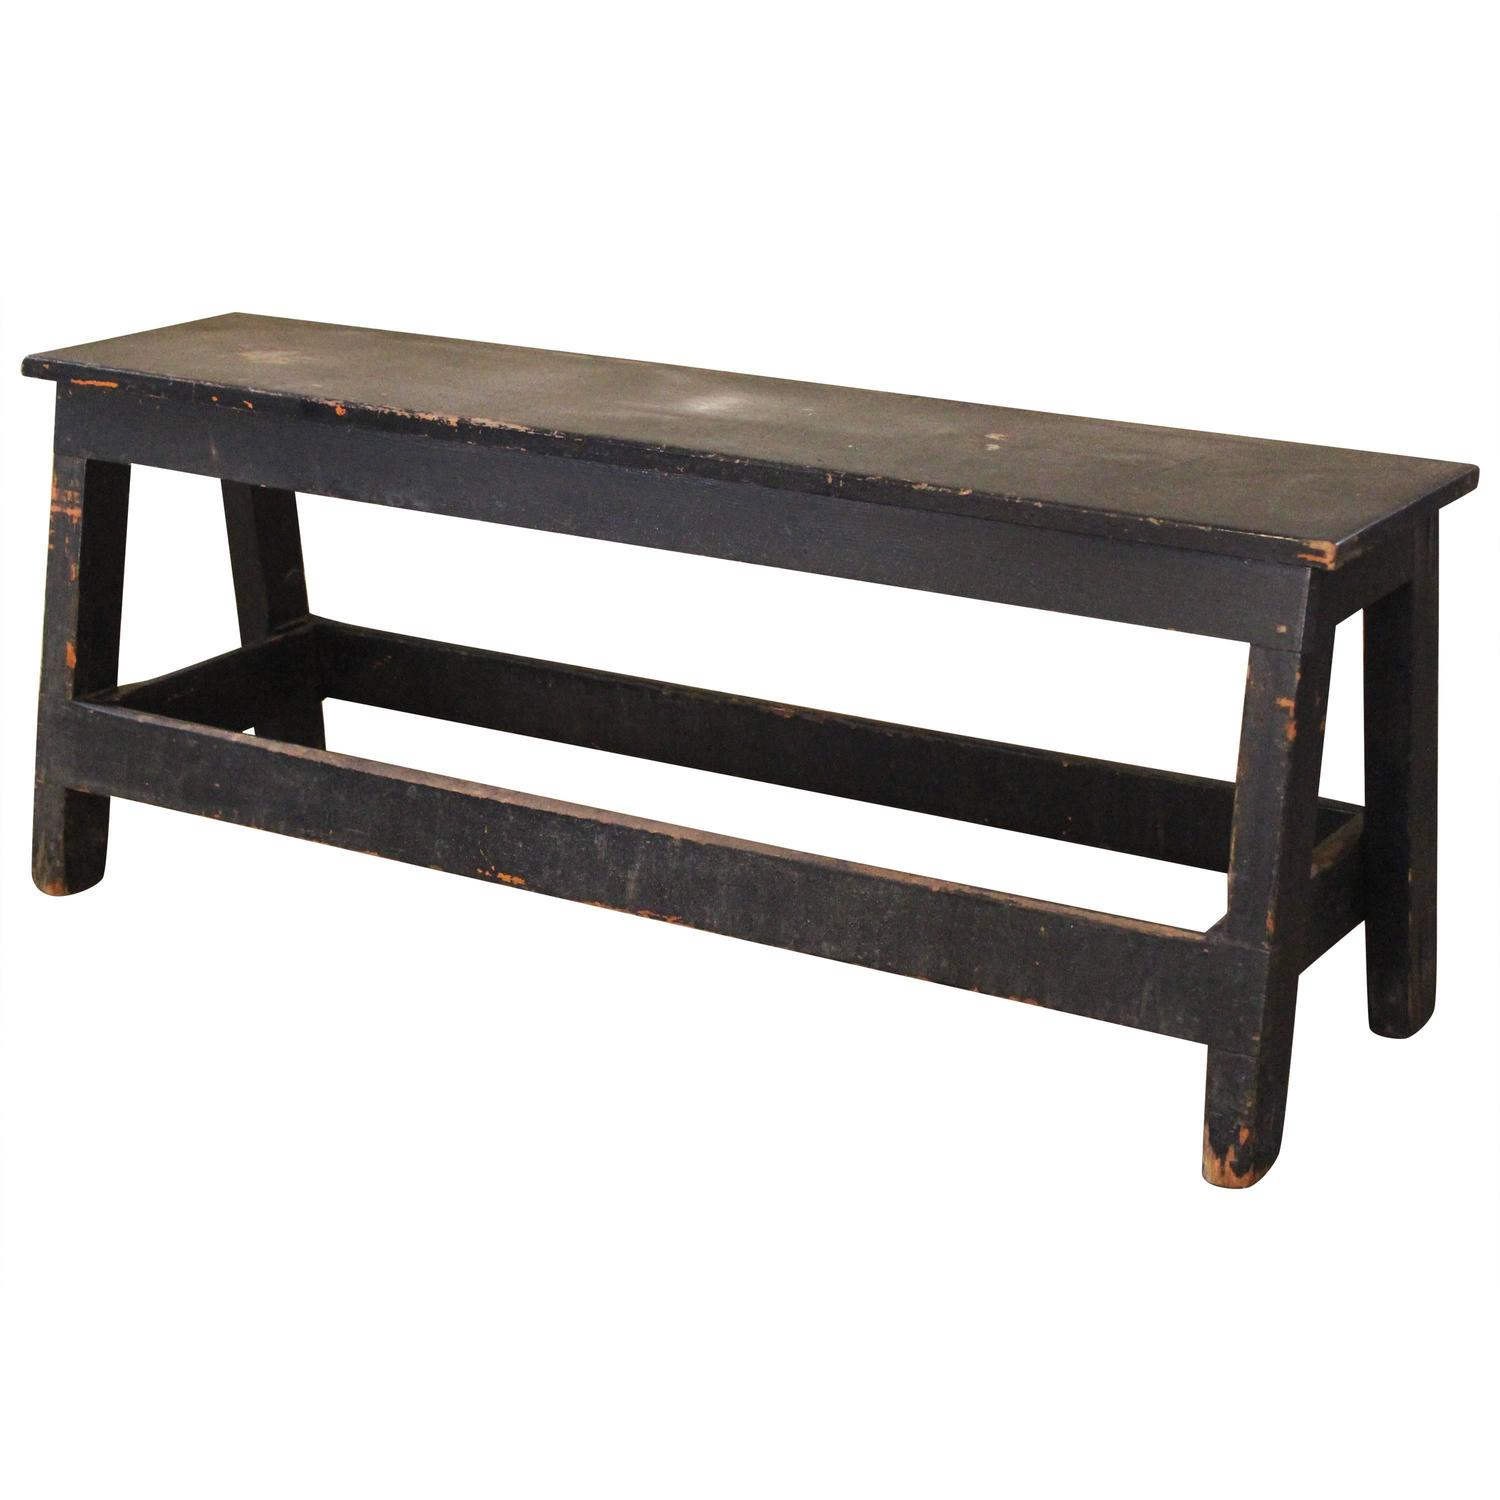 Sandy My Love Vintage Industrial Low Work Bench Wooden Table For Sale At 1stdibs